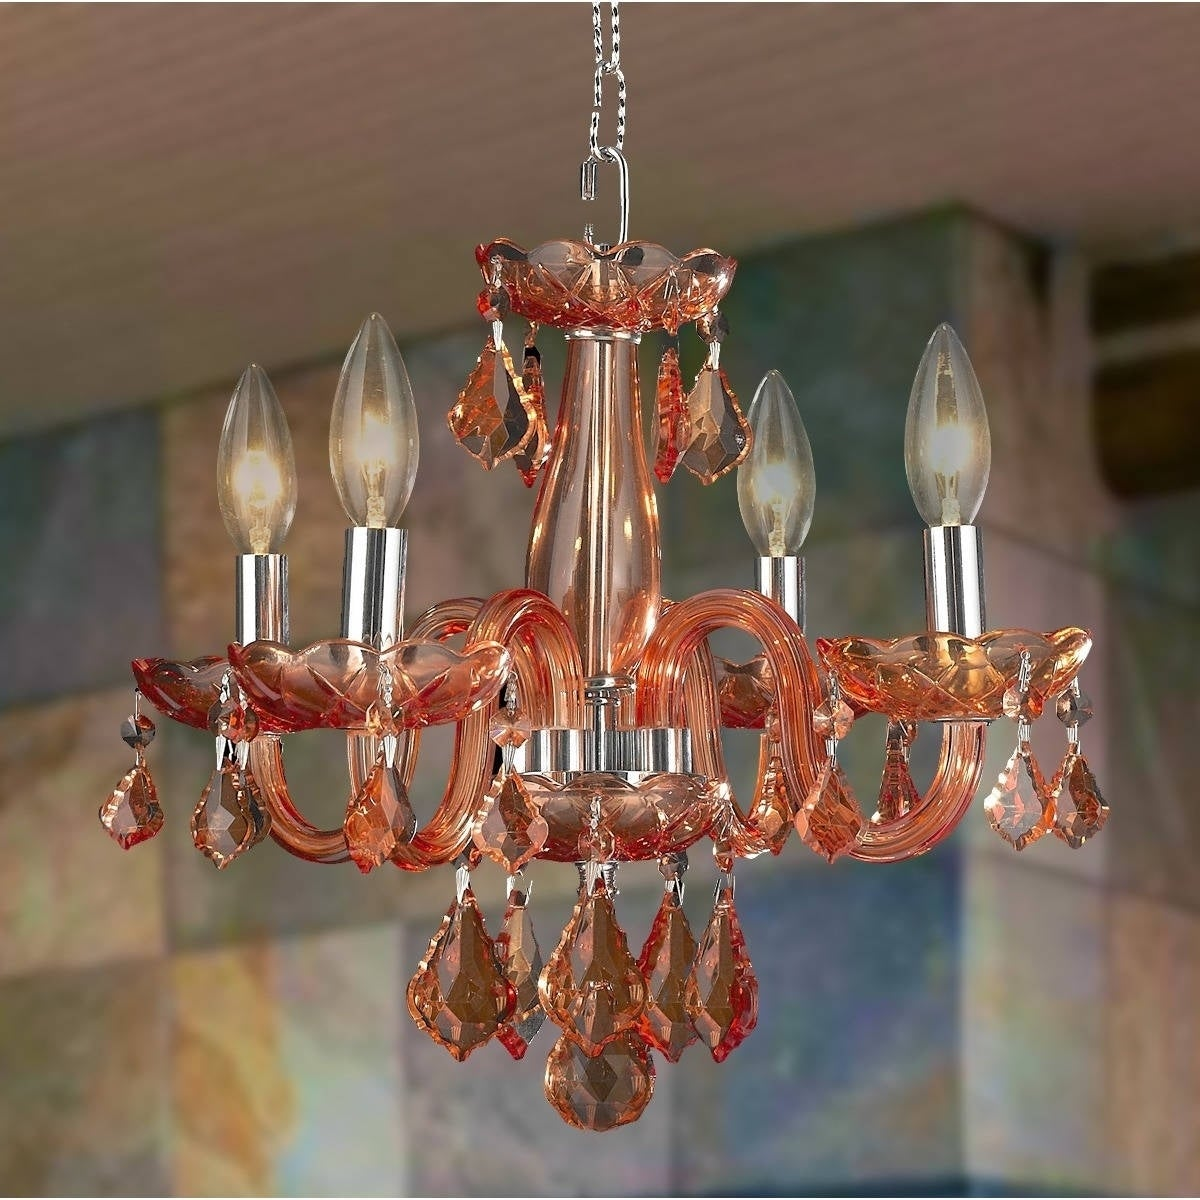 Kids room chandelier coral 4 light full lead coral red crystal chrome finish chandelier